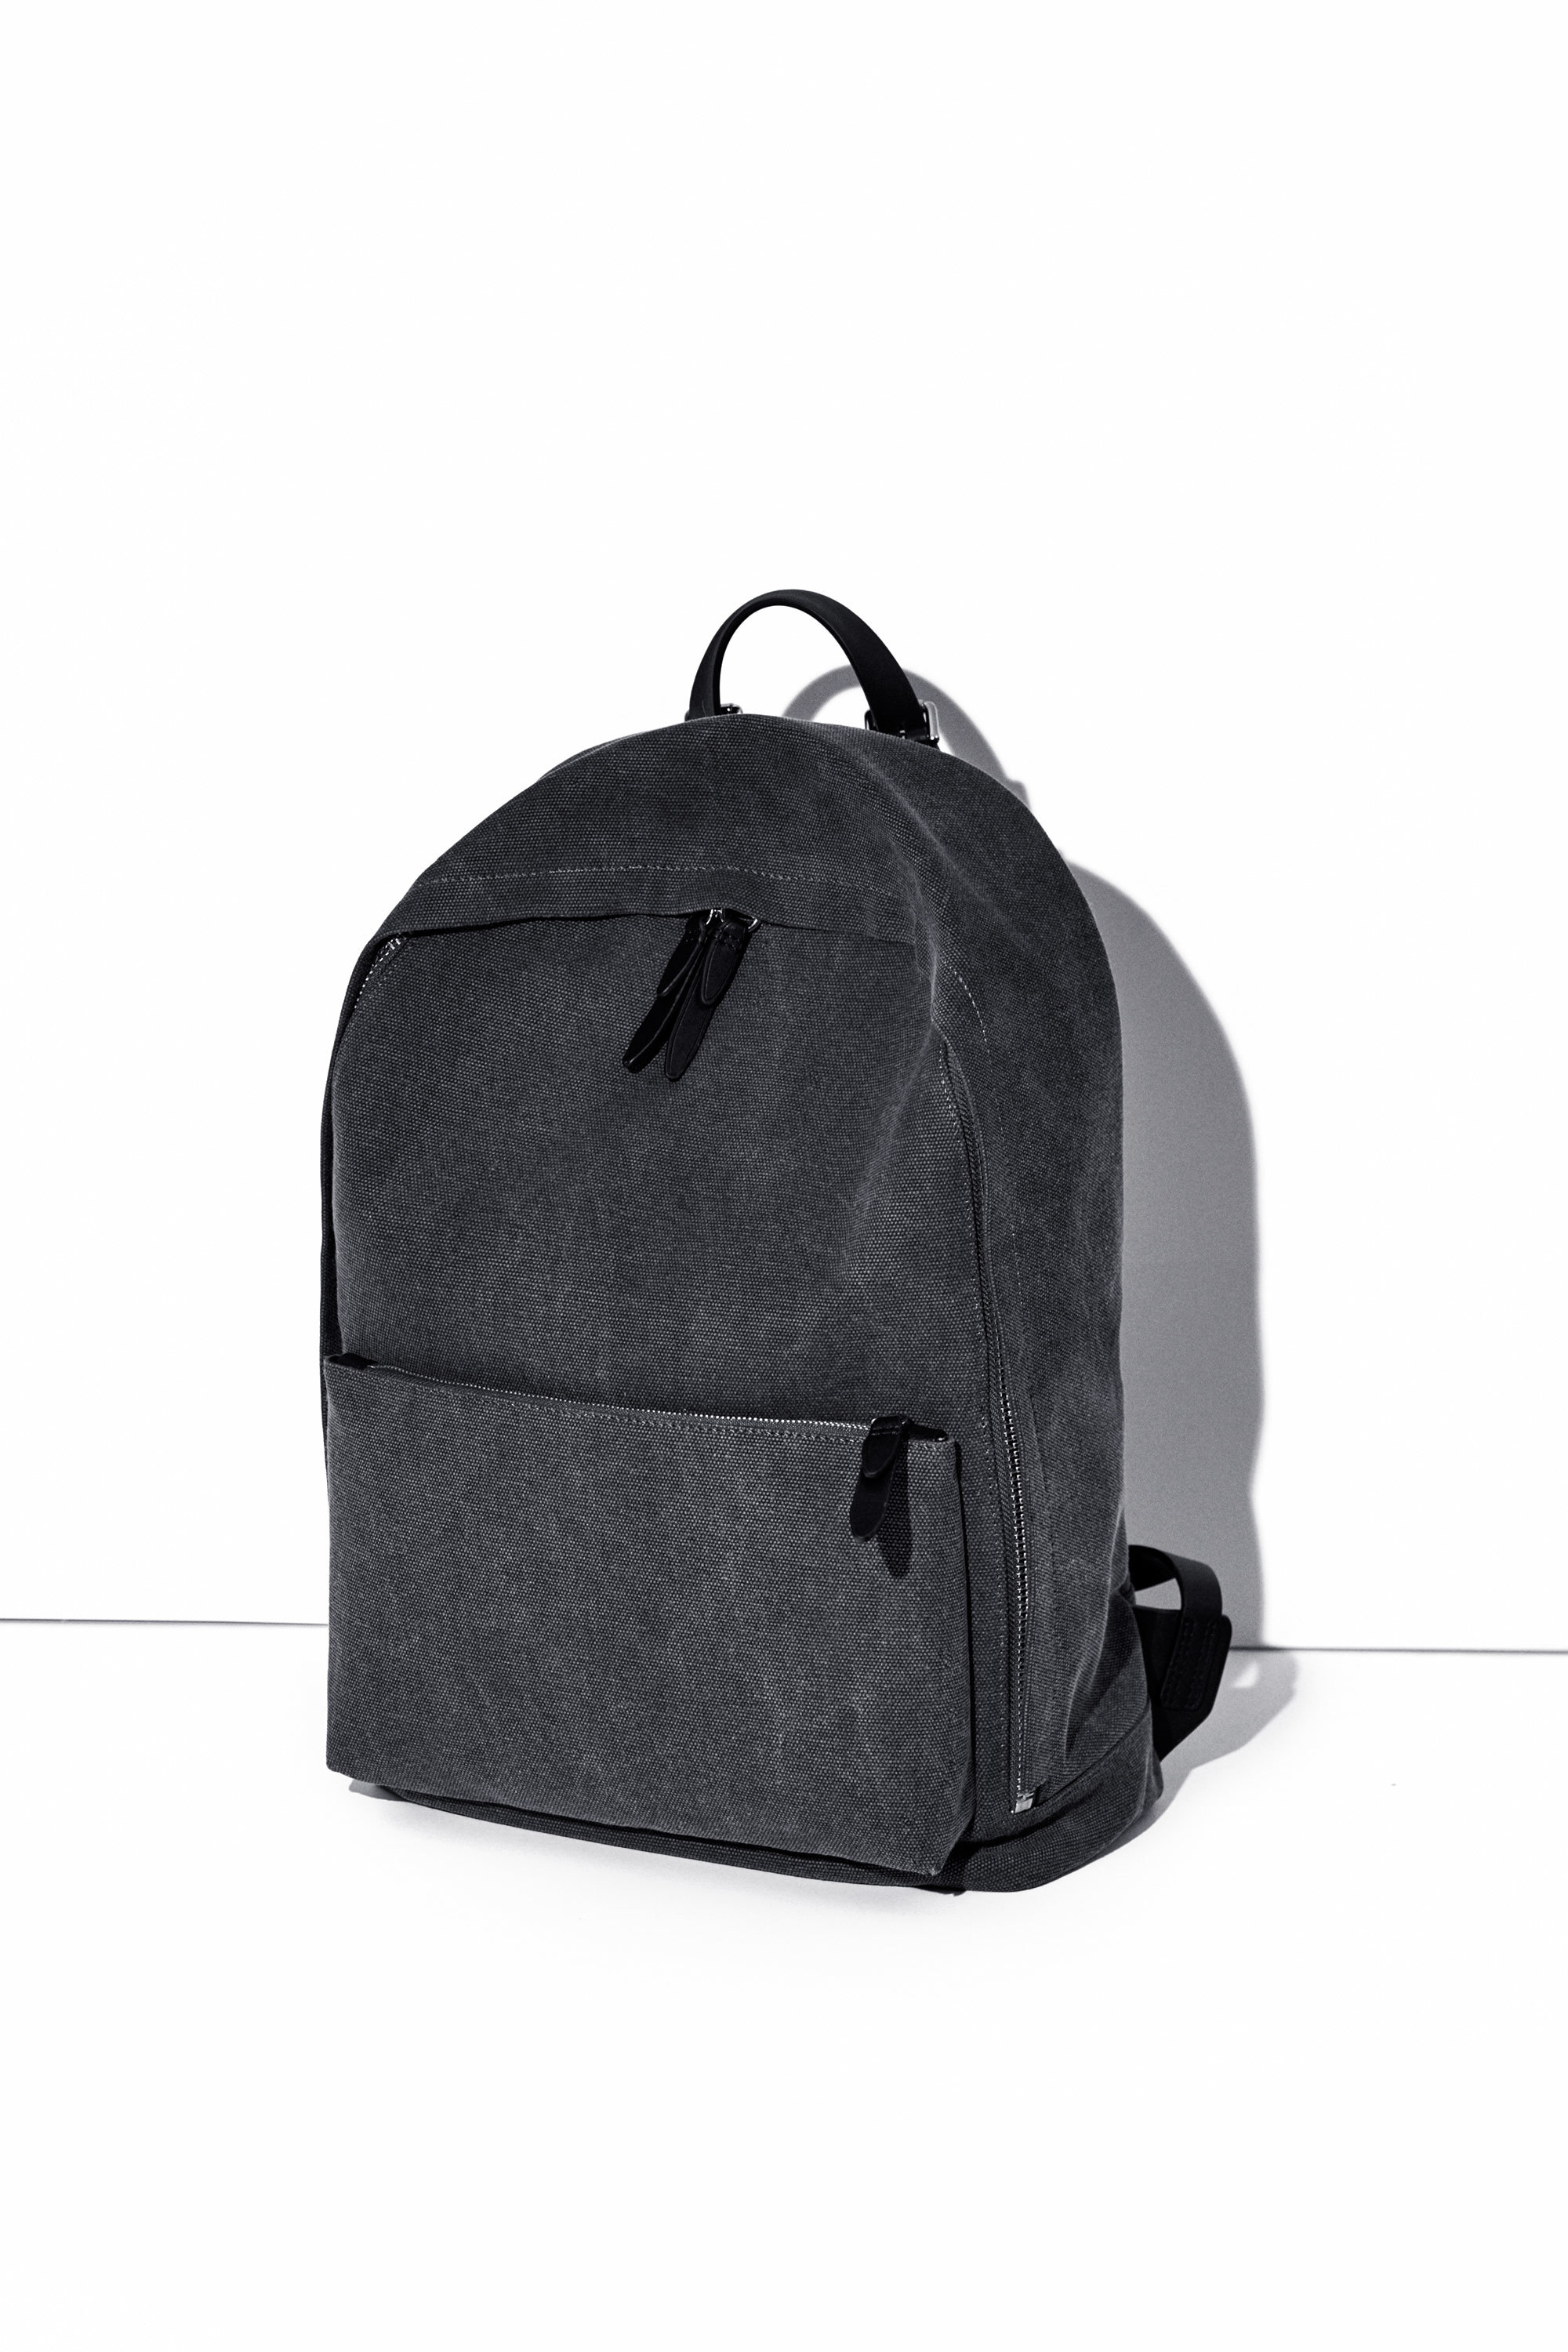 3.1 phillip lim 31 Hour Backpack in Gray for Men | Lyst